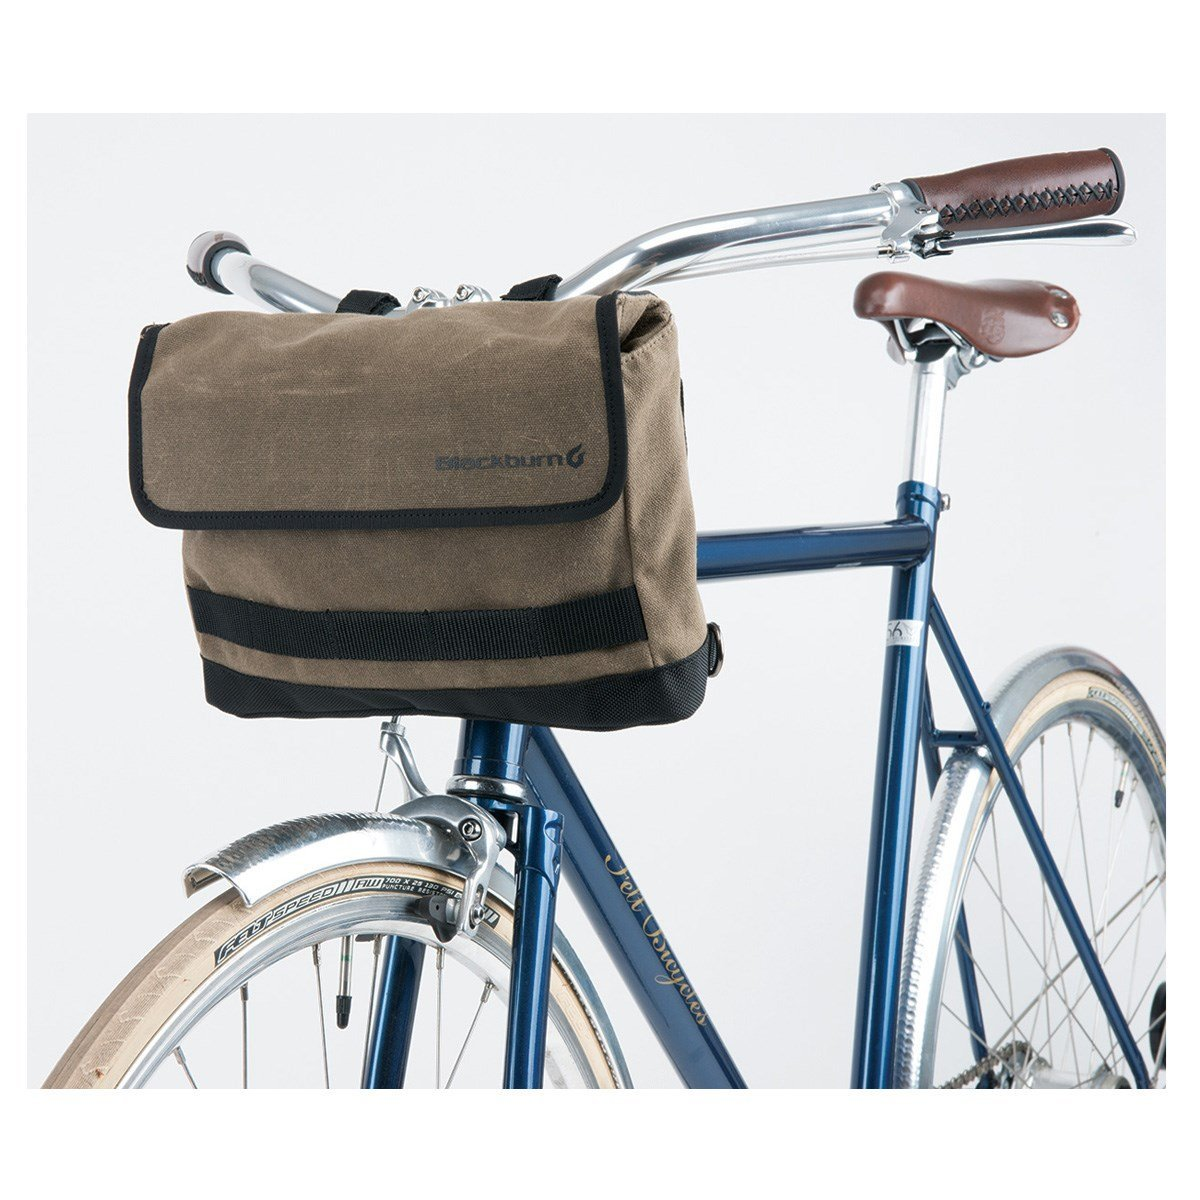 Blackburn Accessories > Bags & Seatpacks Blackburn Wayside Handlebar Bag / Musette